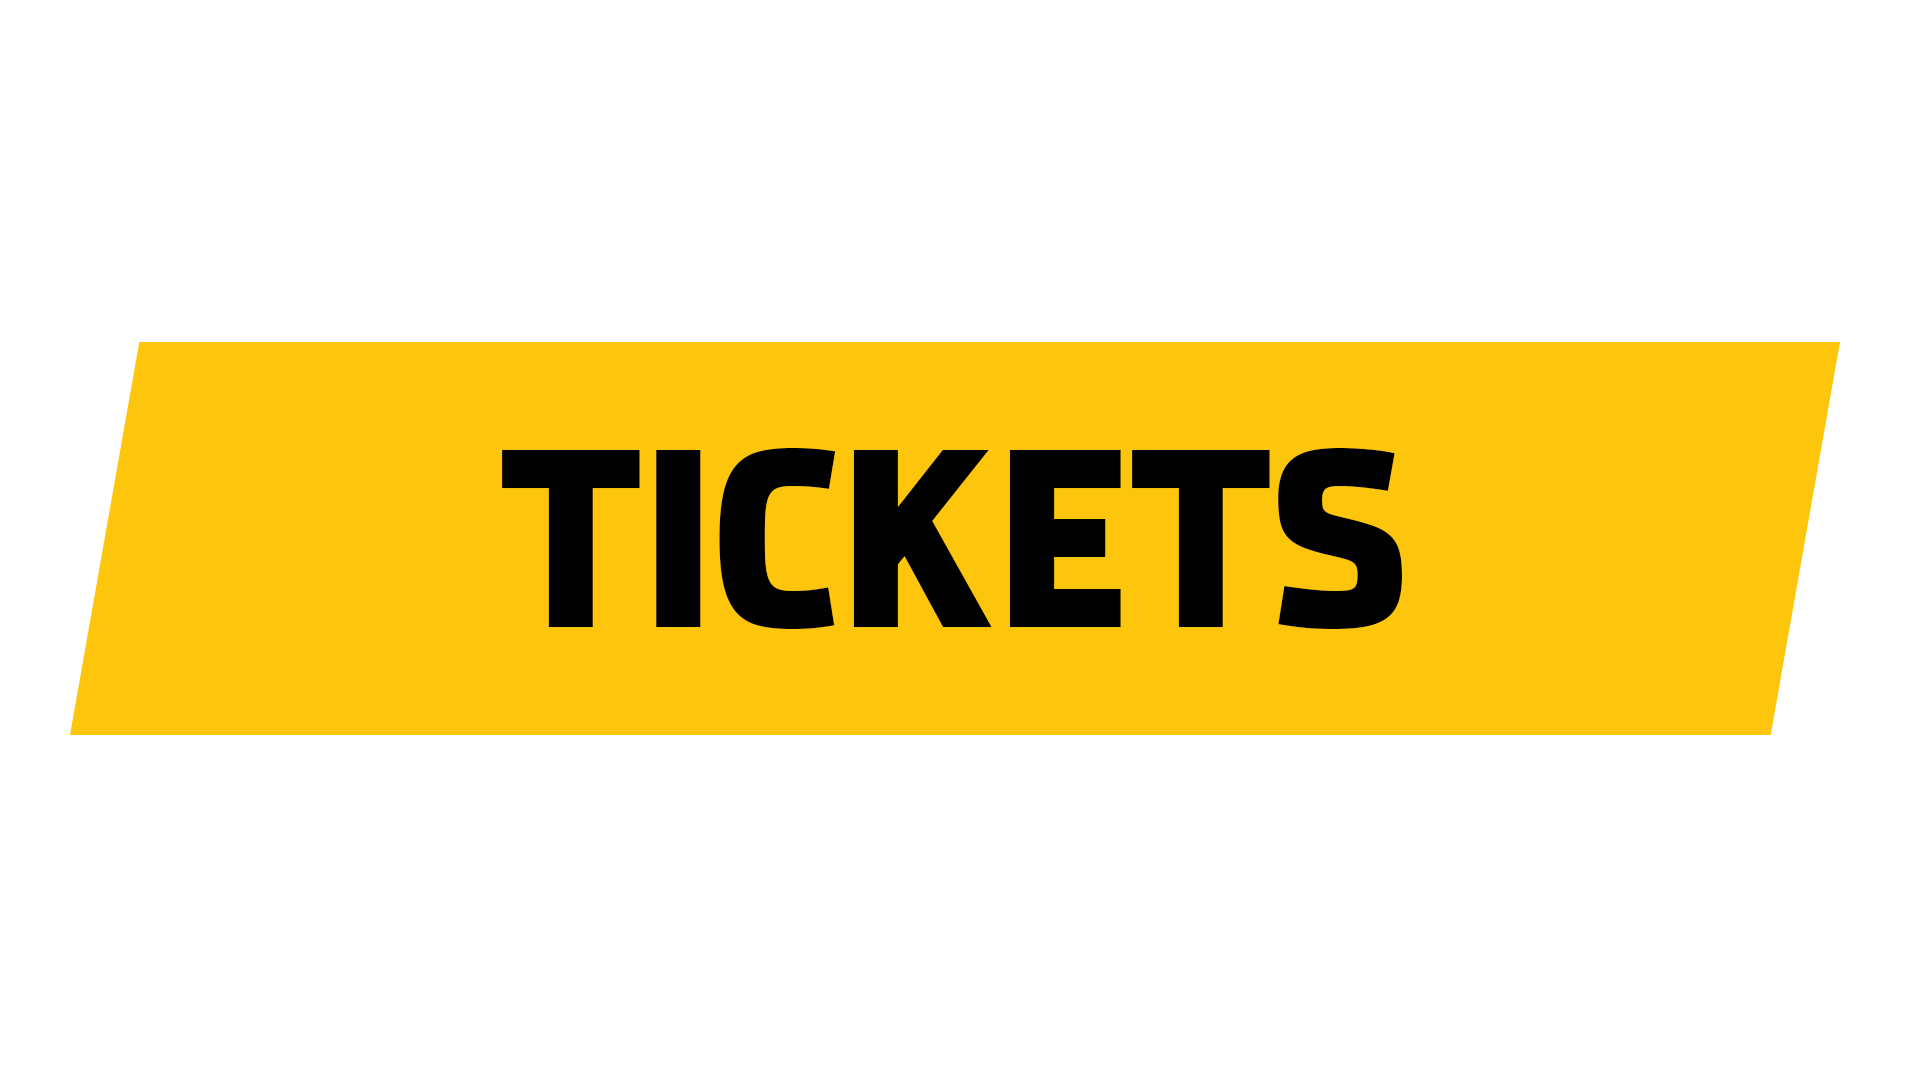 https://tickets.rodajckerkrade.nl/